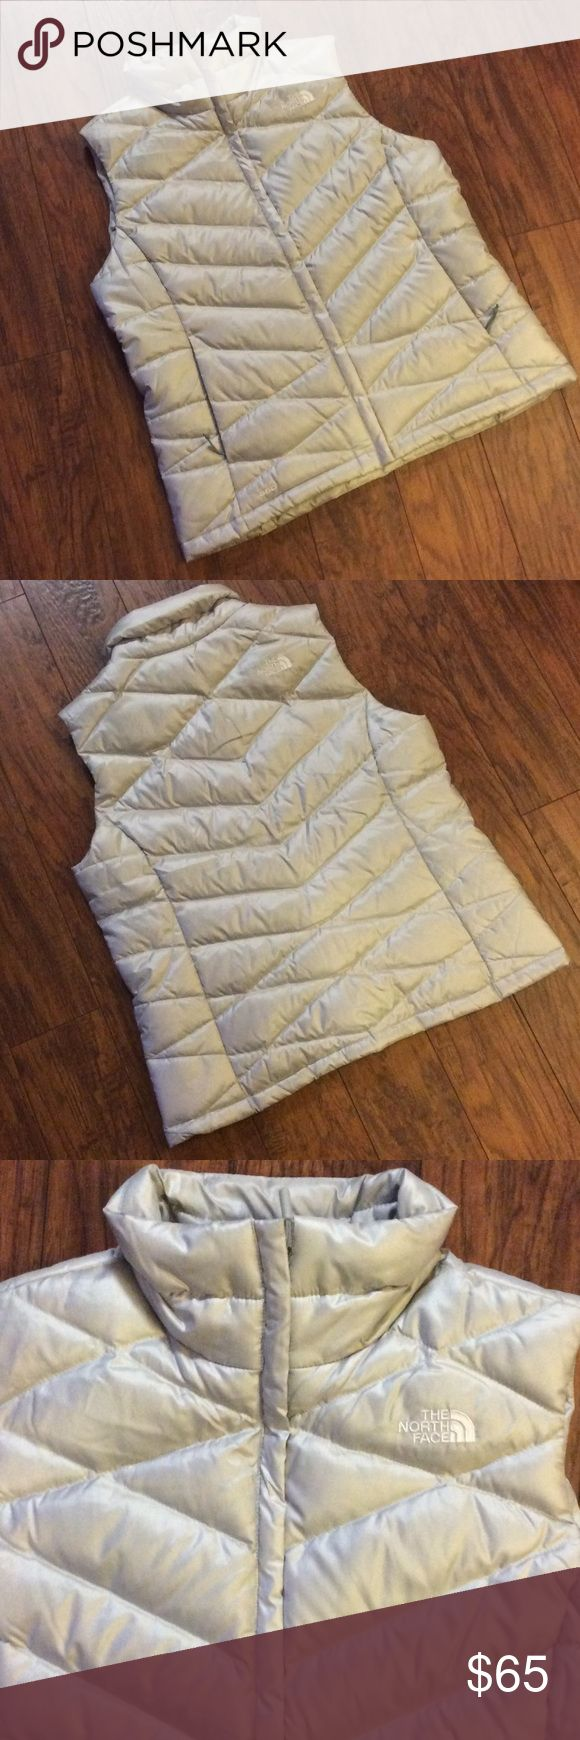 🌺North Face Vest - Great Condition🌺 Womens North Face vest in great condition. Silver/grey vest with white North Face stitching. North Face Jackets & Coats Vests